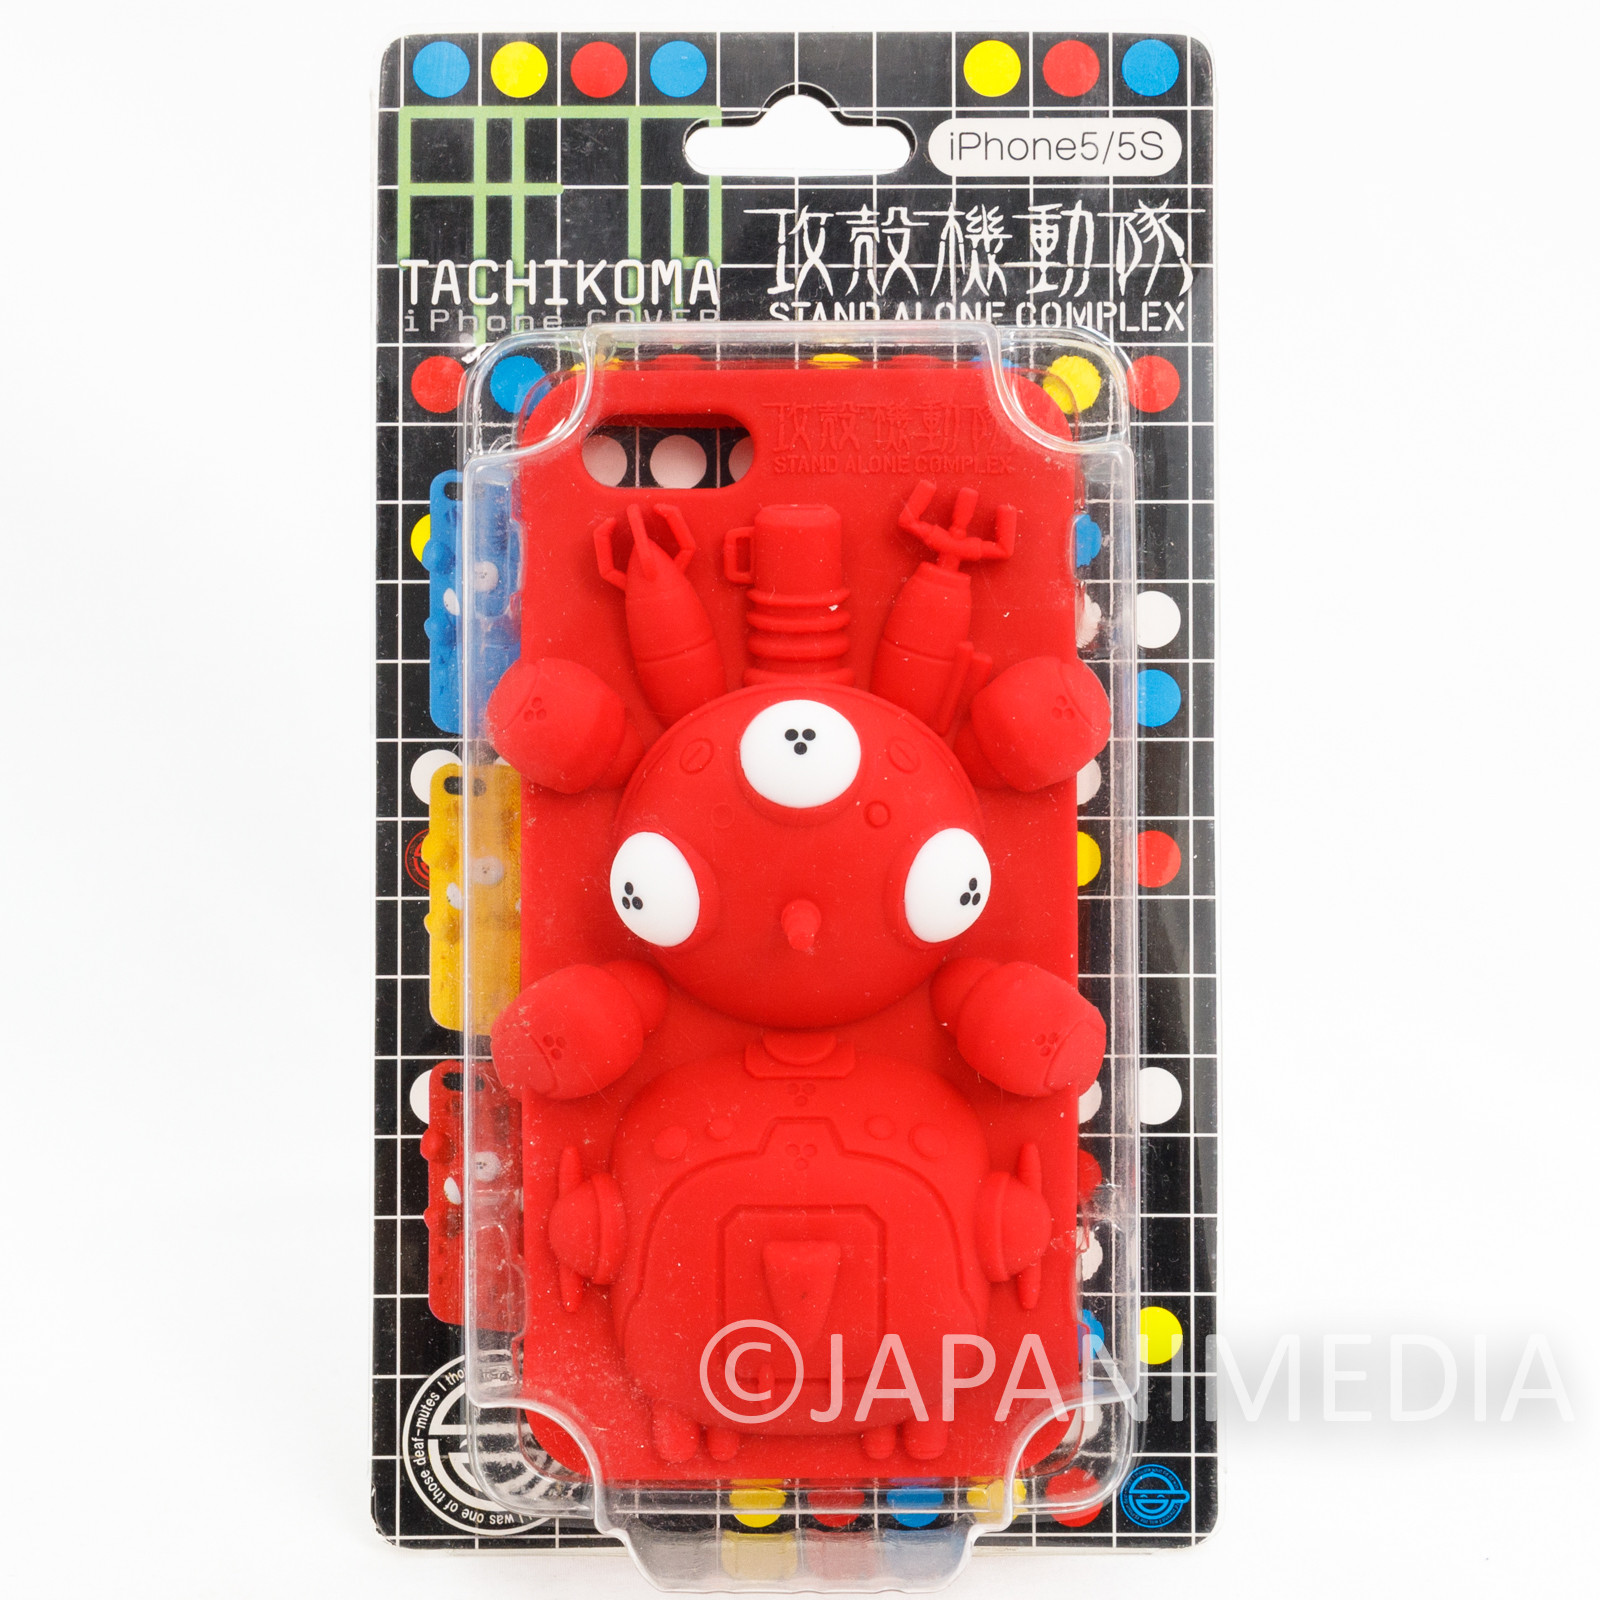 Ghost in the Shell Logikoma Smart Phone Sillicon Case for iPhone5/5s JAPAN